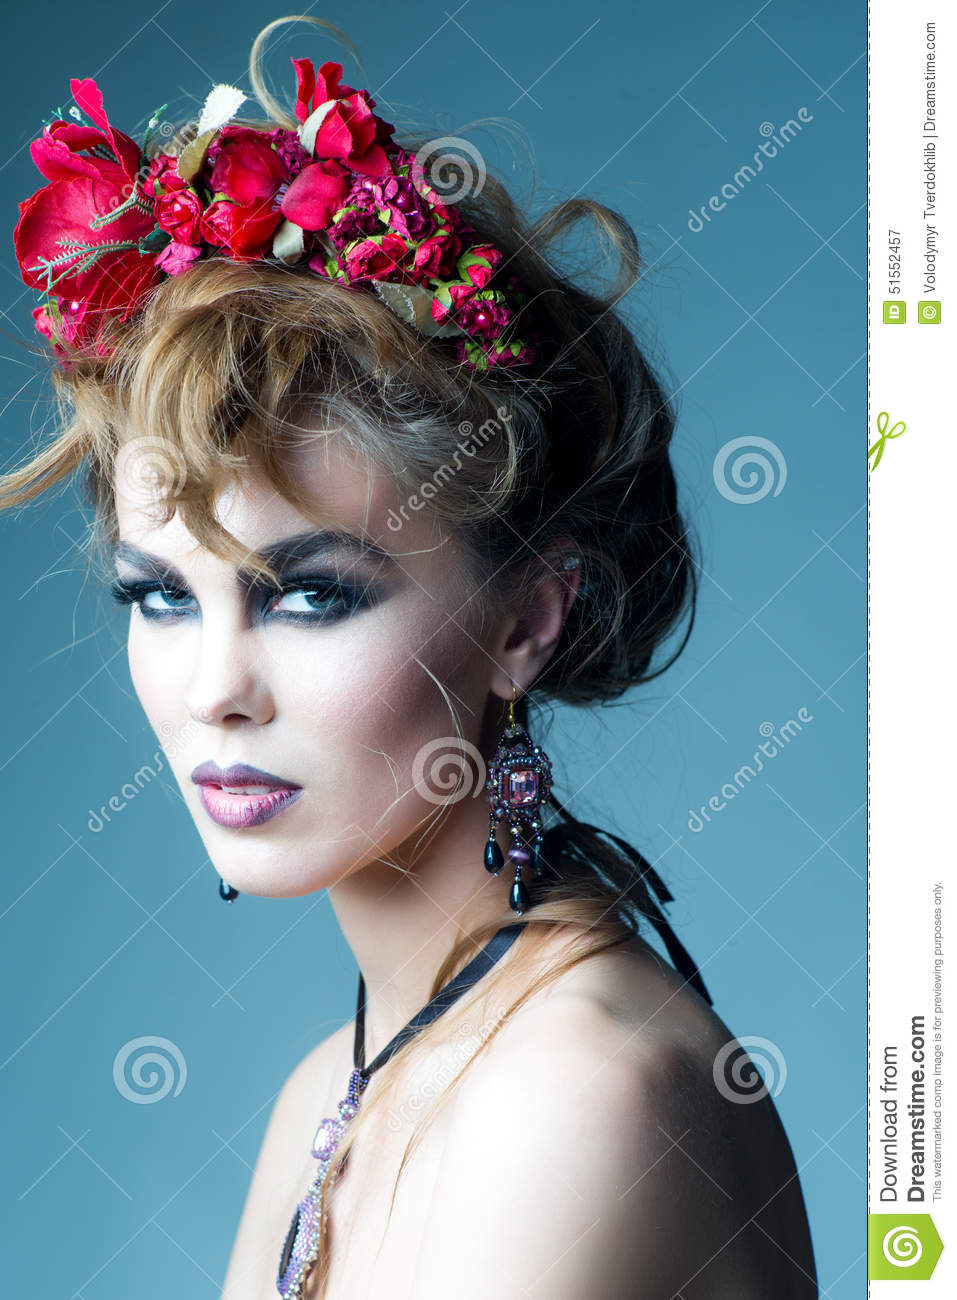 Woman With Red Flowers In Hair Stock Image Image Of Seductive